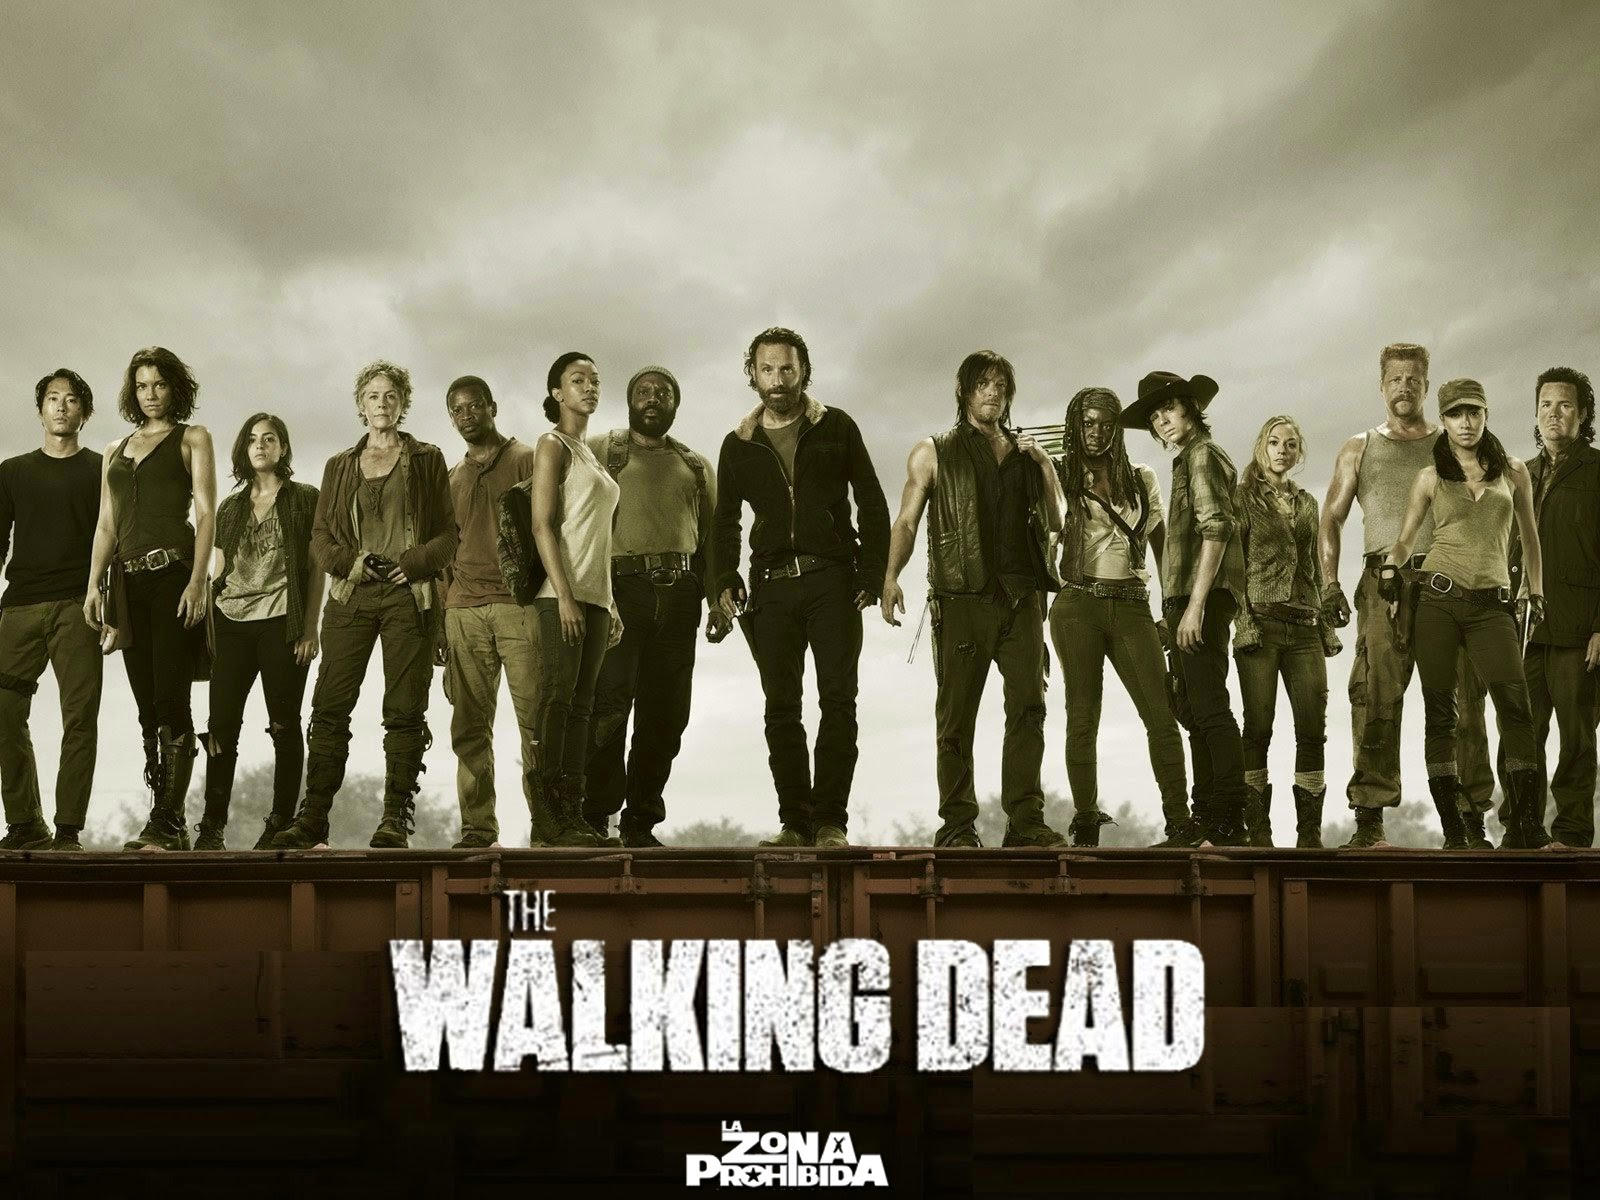 LA ZONA PROHIBIDA: THE WALKING DEAD 5 Temporada